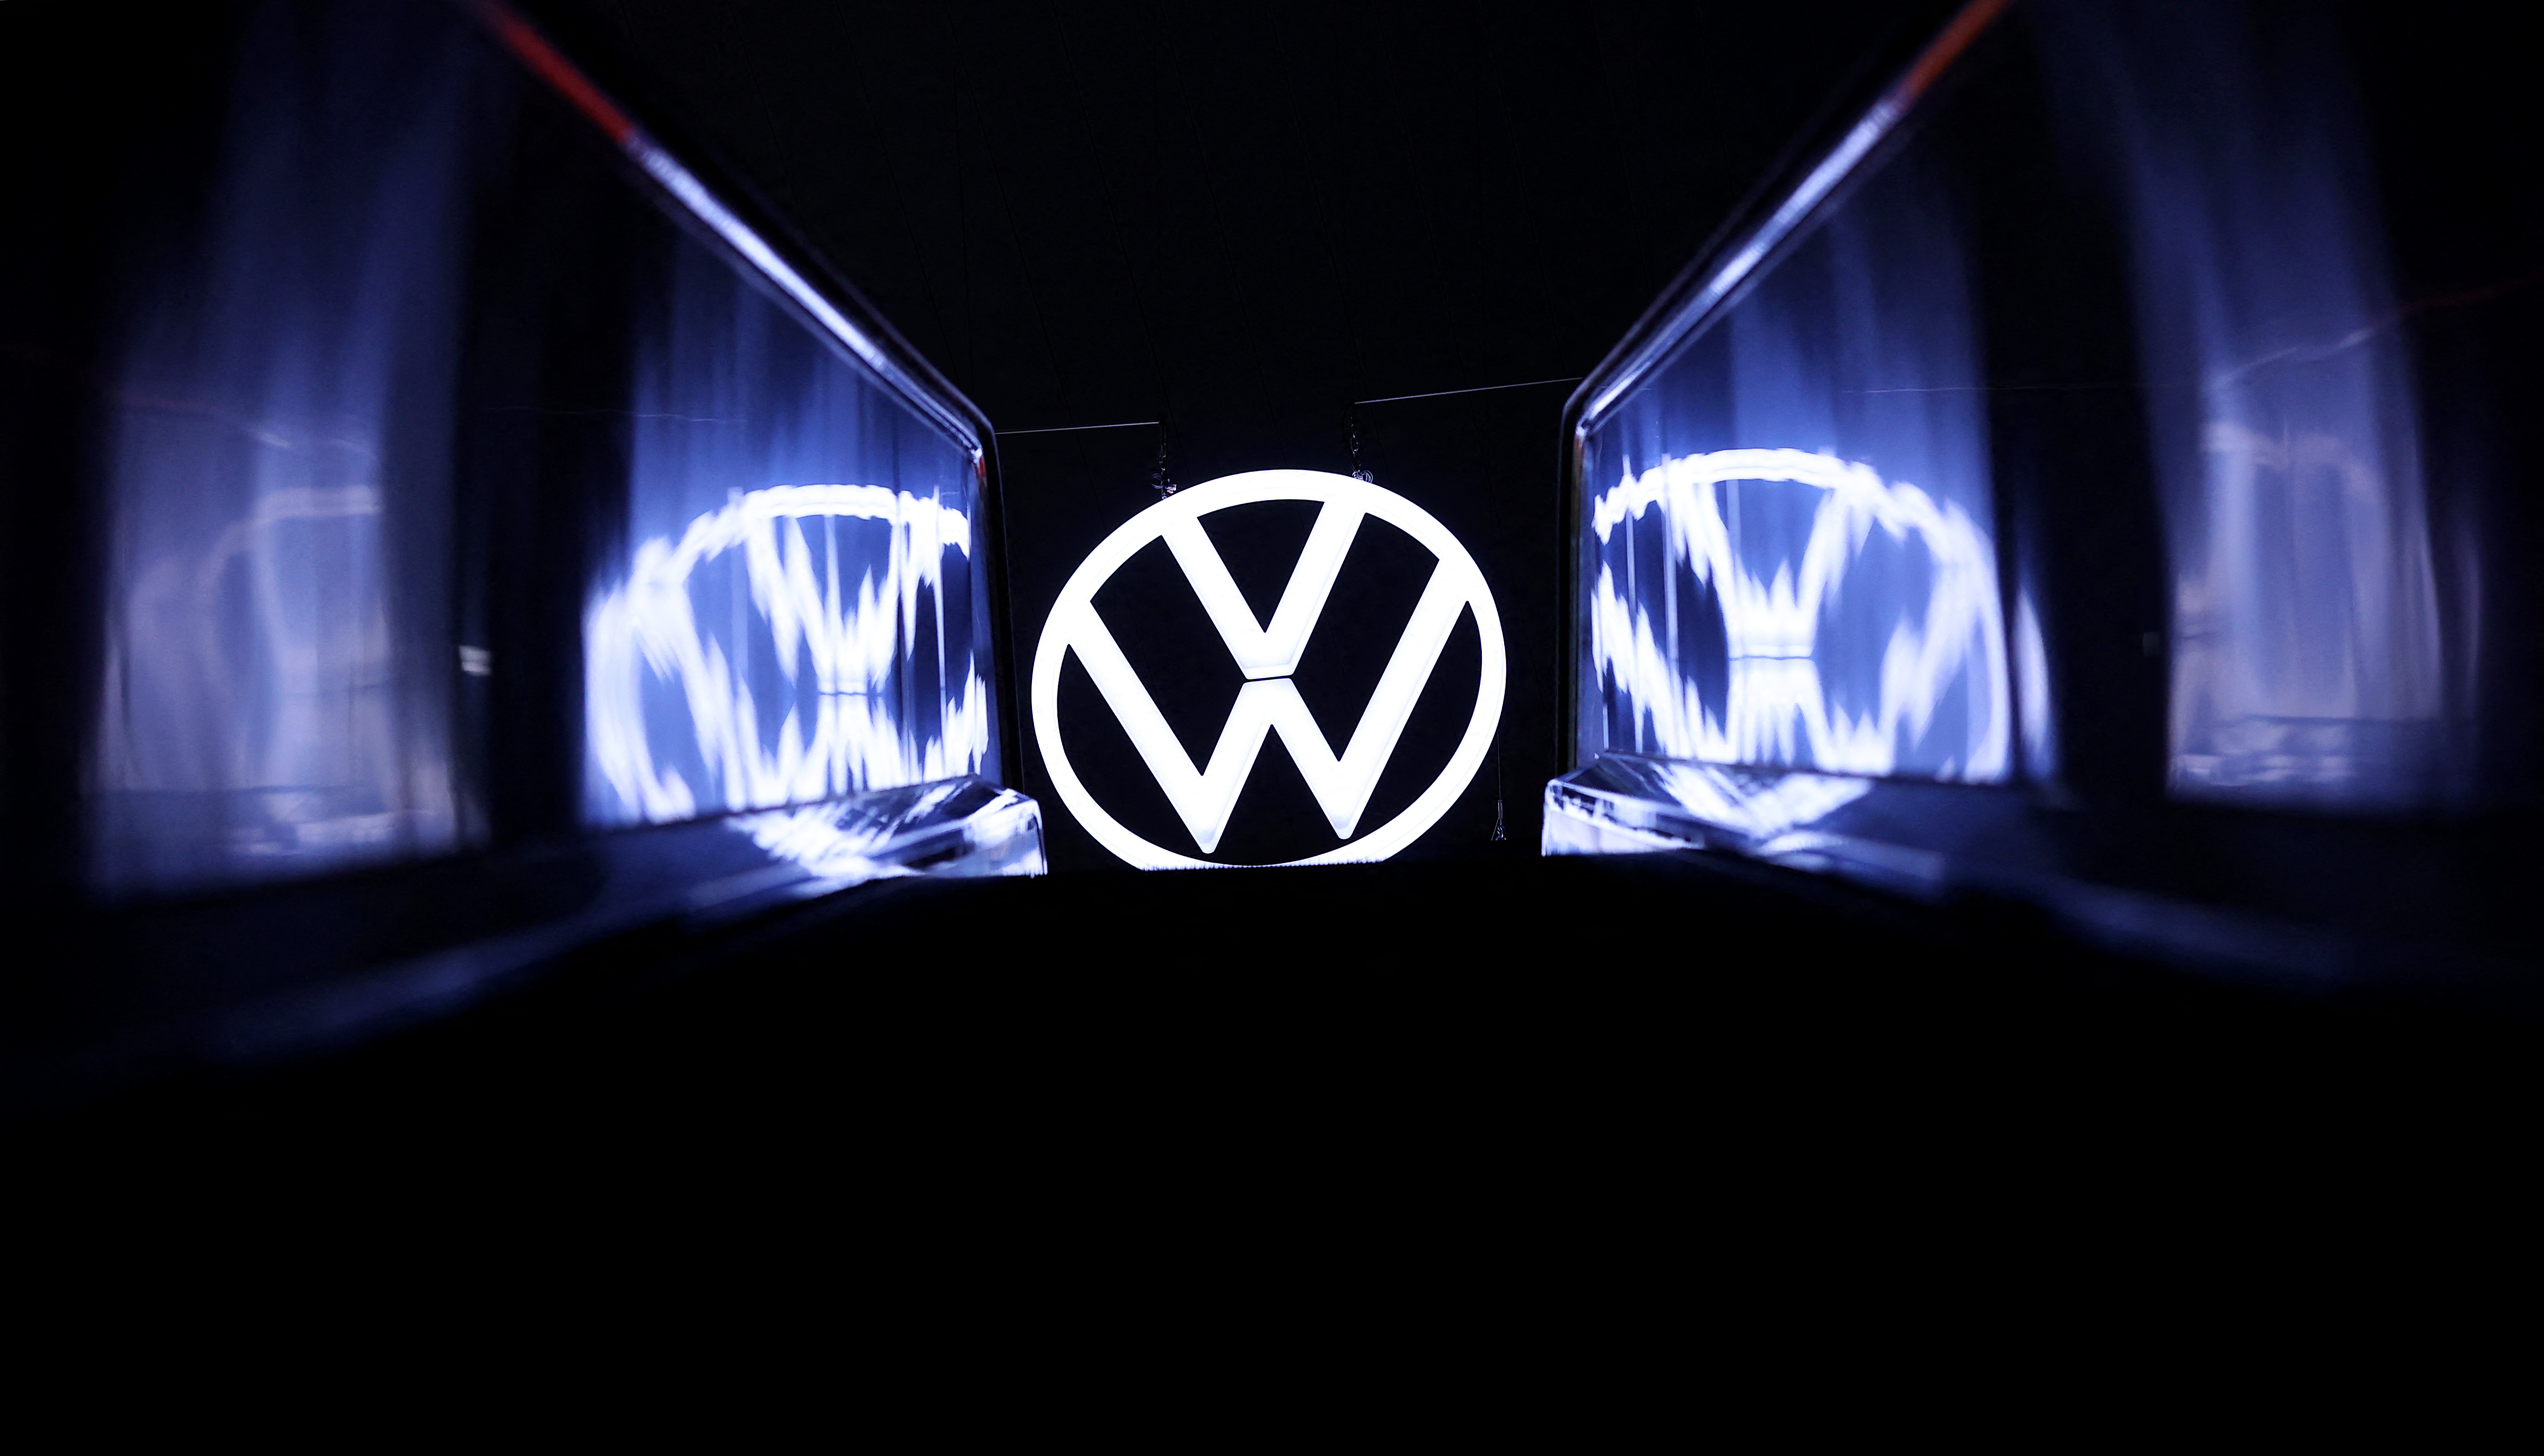 VW expects 'significant' revenue increase in 2021